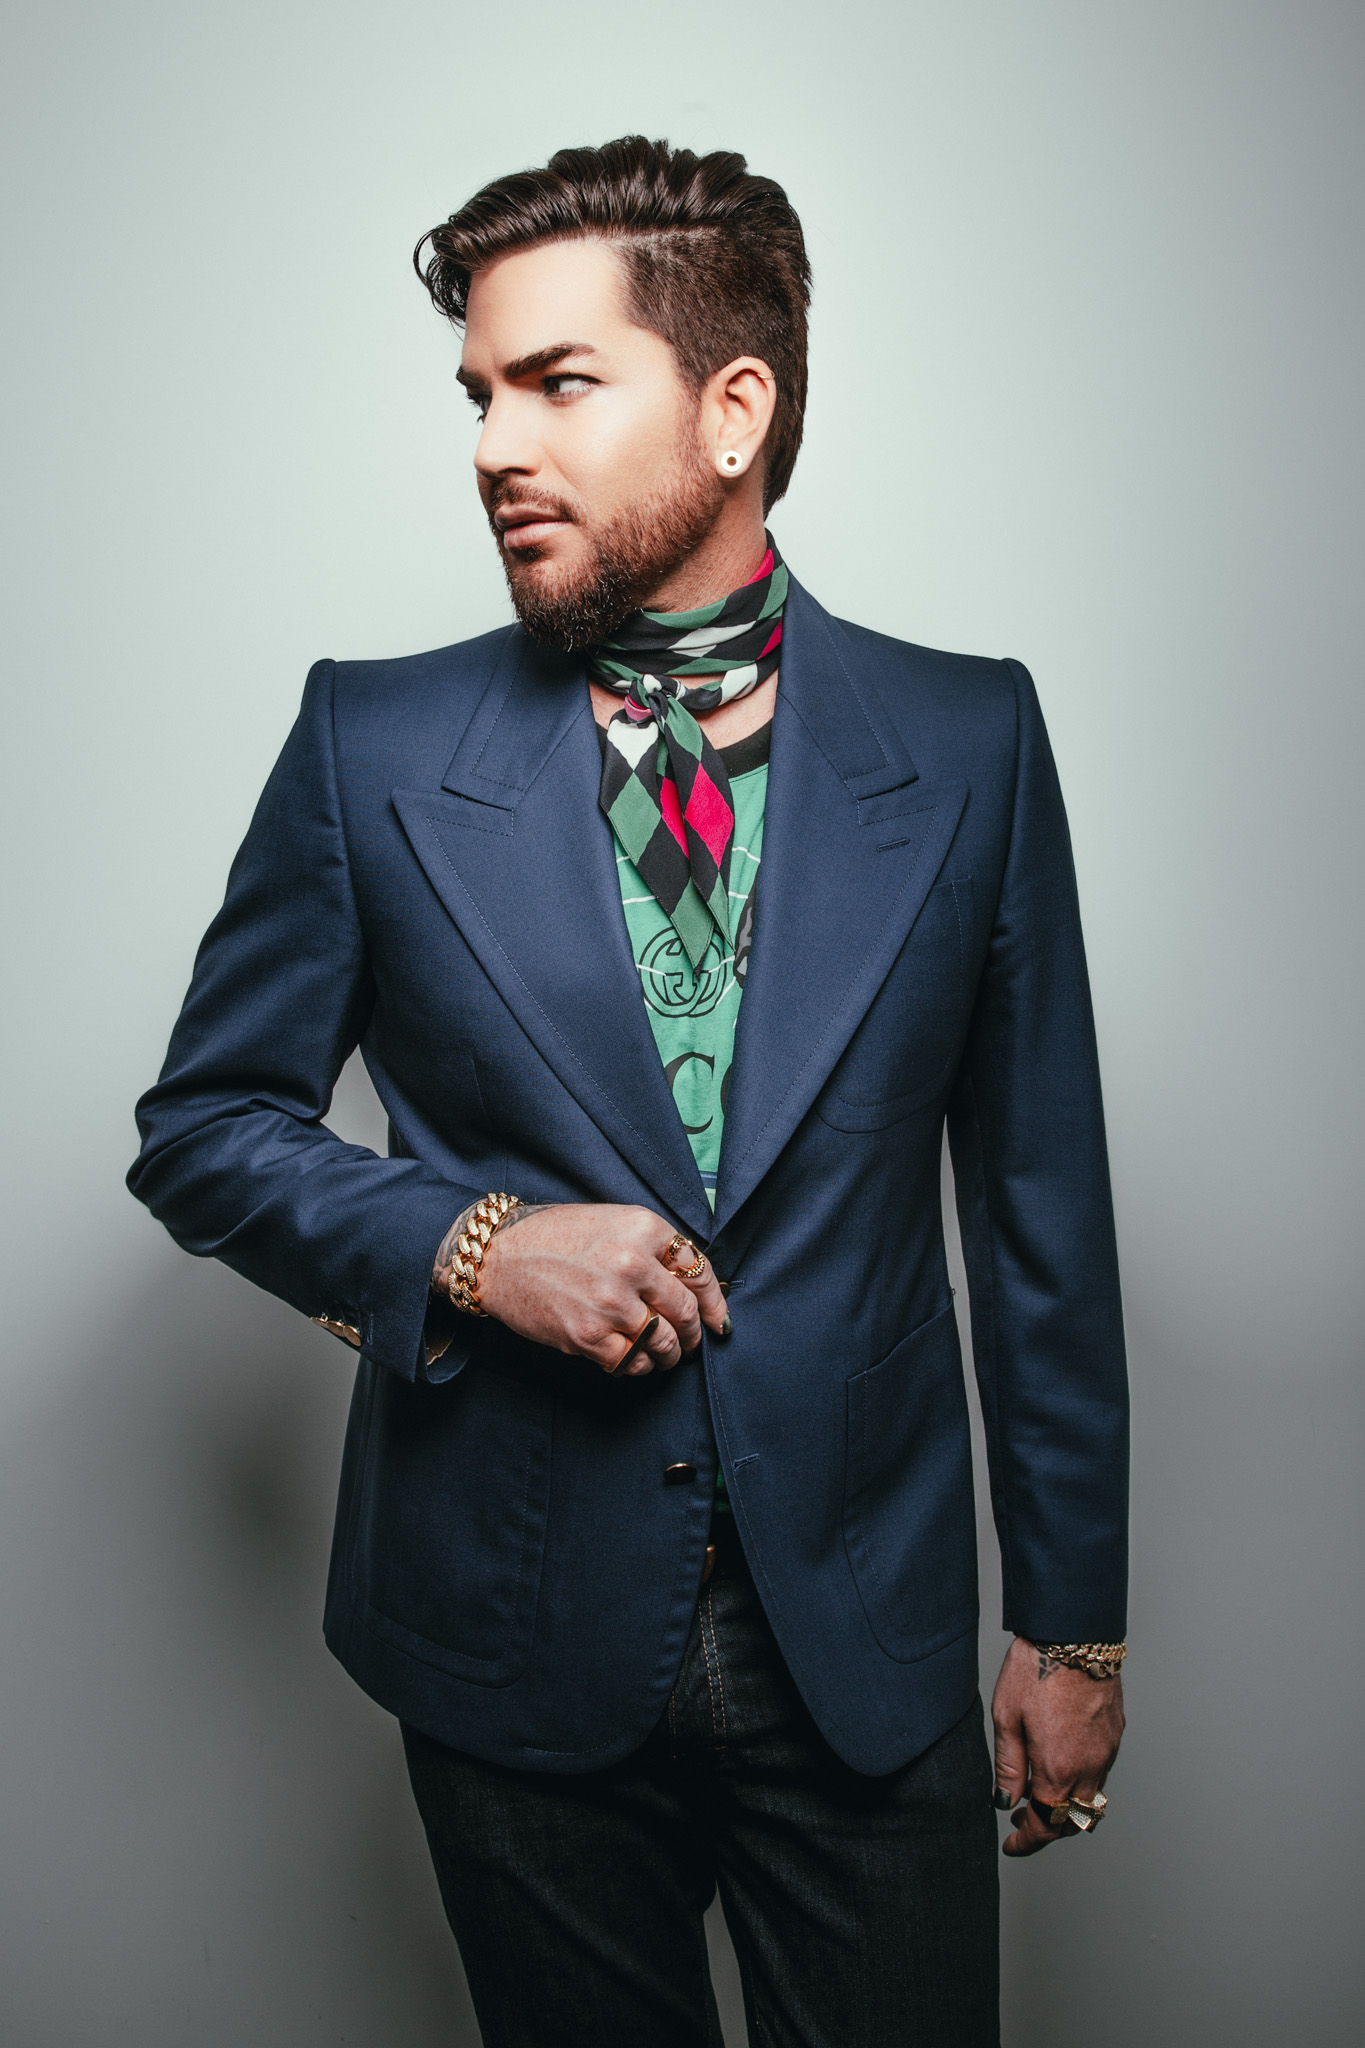 https://cdn2.thelineofbestfit.com/portraits/Adam_Lambert_-_310119_Photo_by_Parri_Thomas_002.jpg